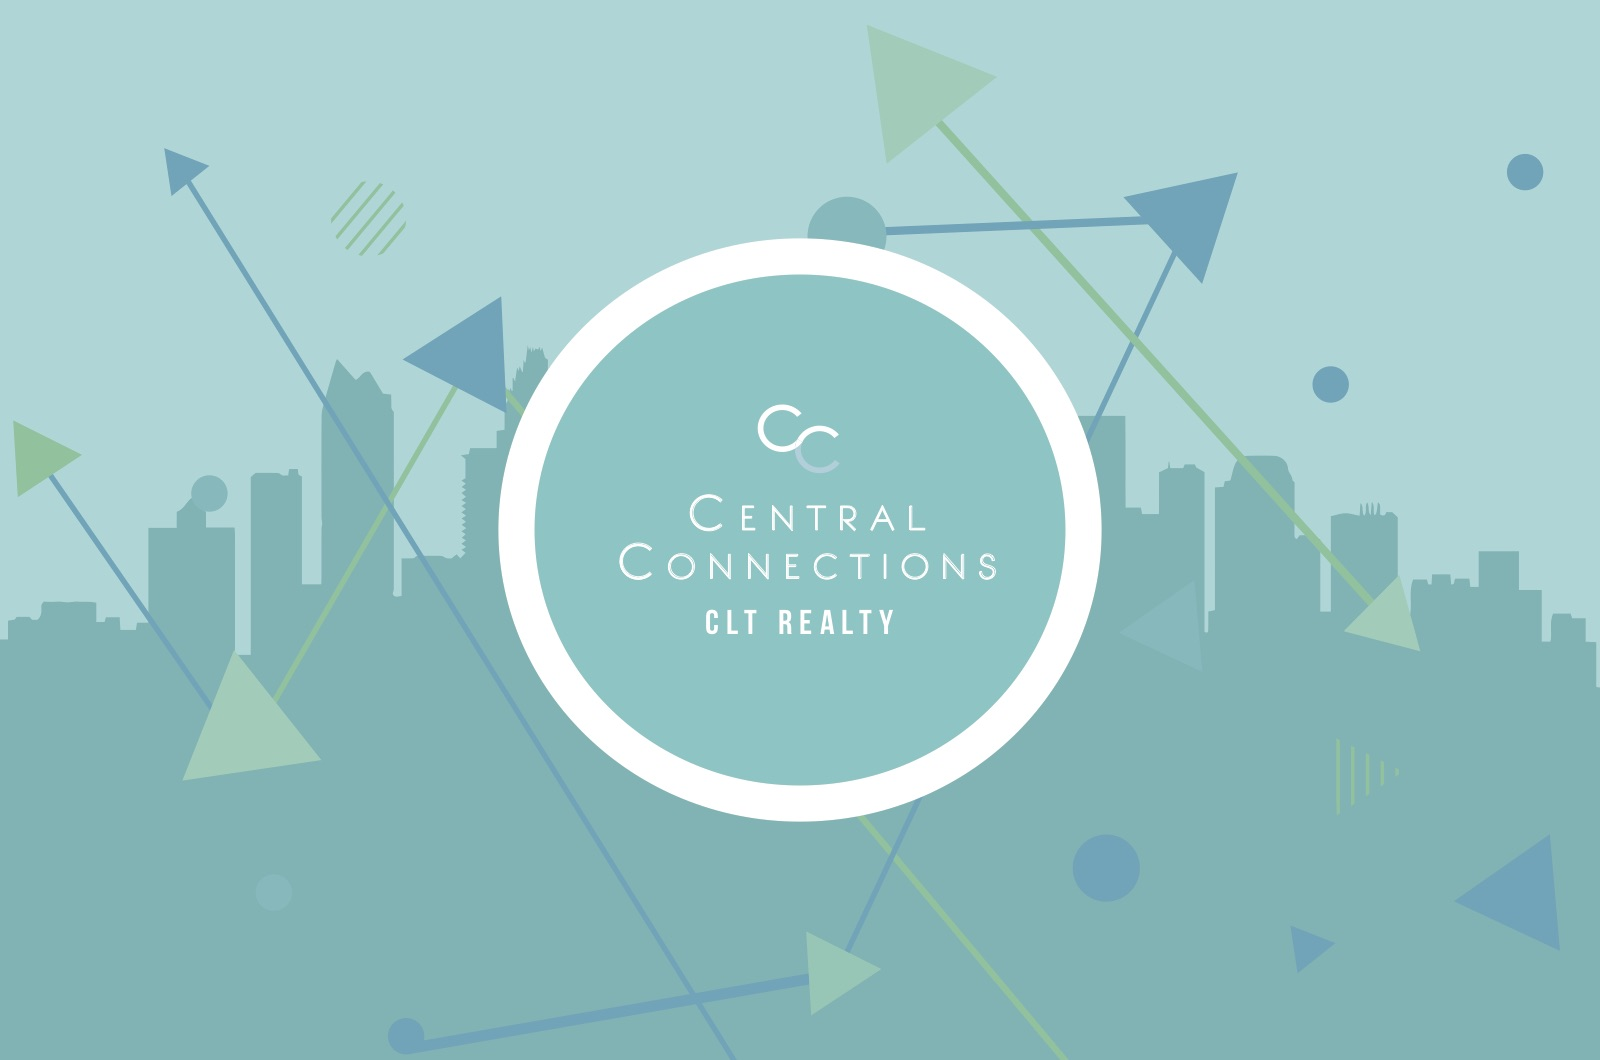 Central Connections CLT Realty